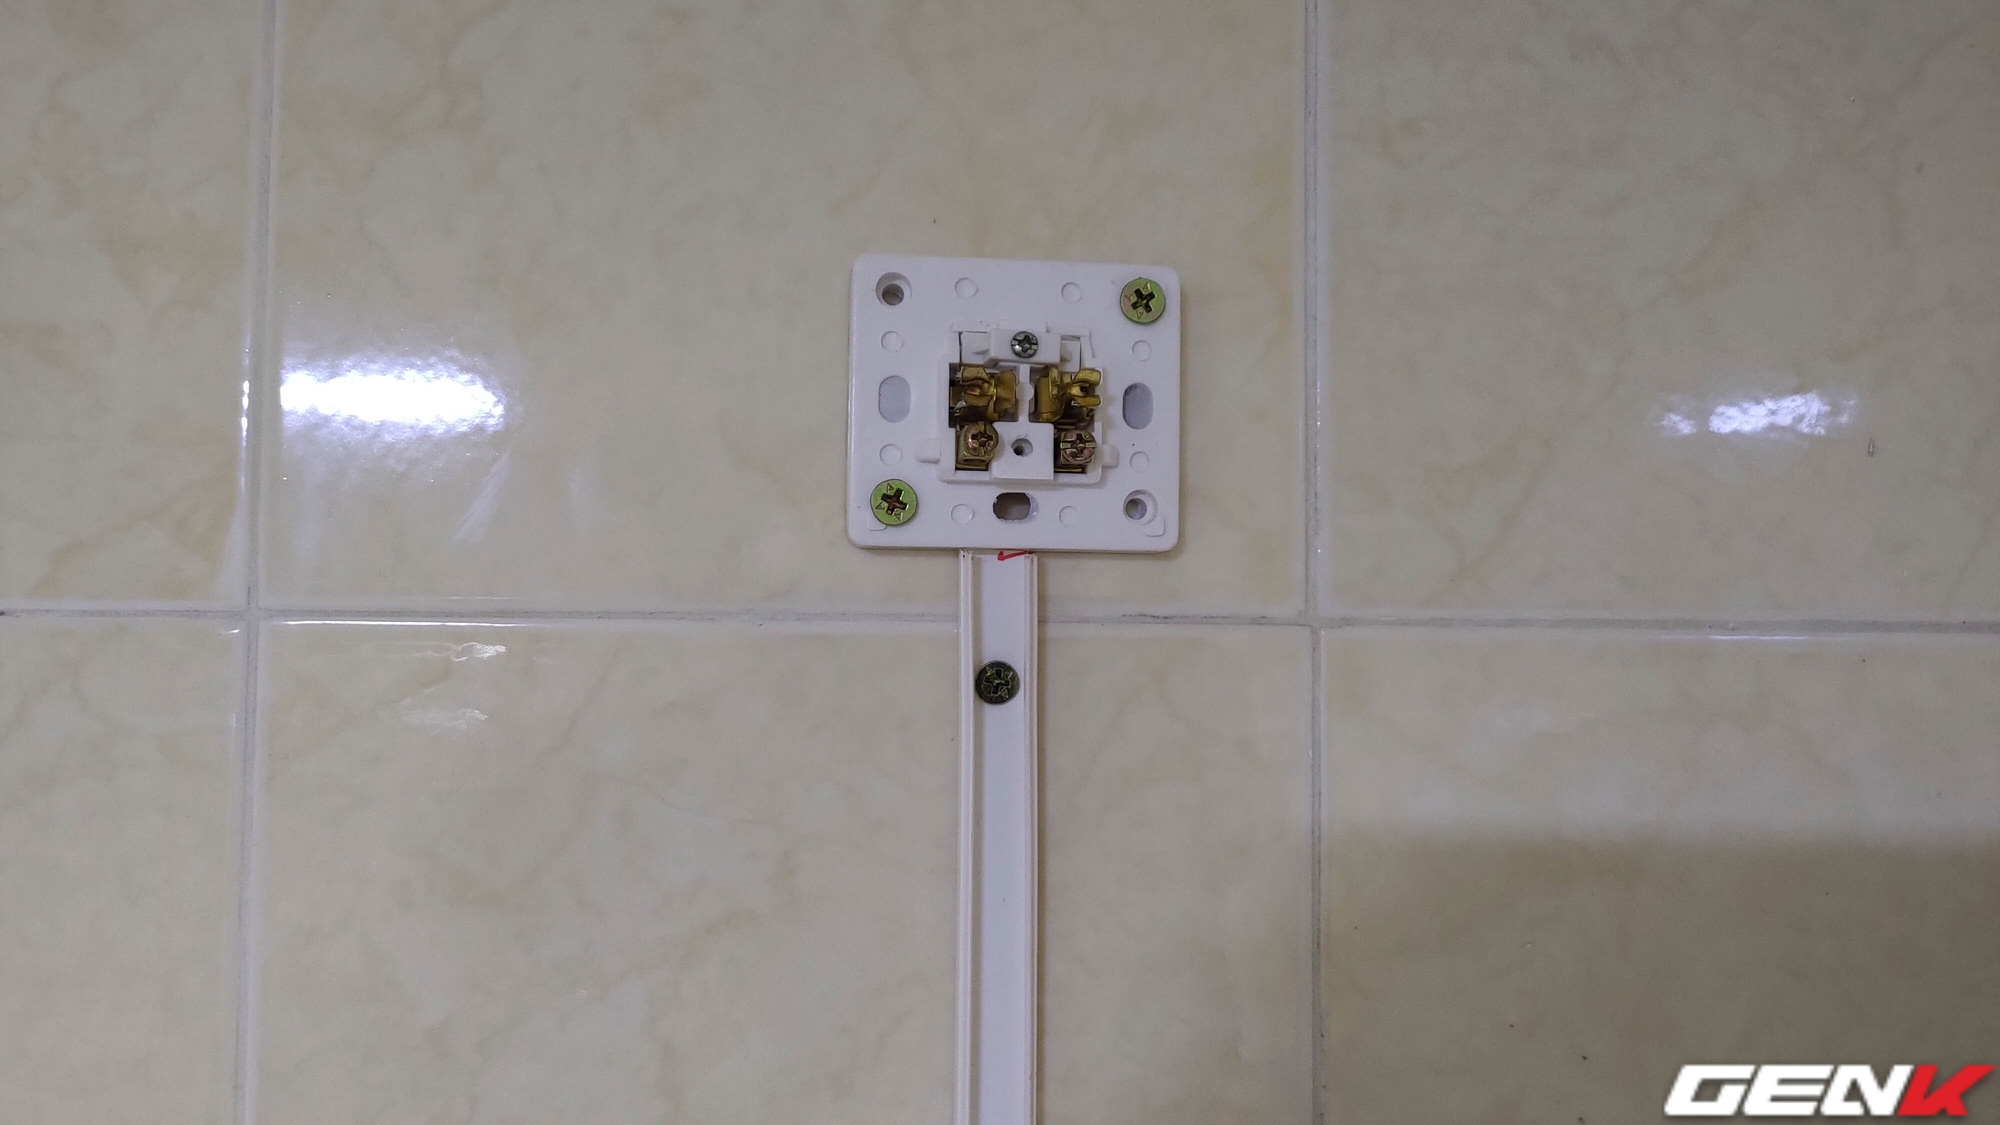 The toilet is too hot, a female friend shared how to install a fan to cool herself, which anyone can do - Photo 9.